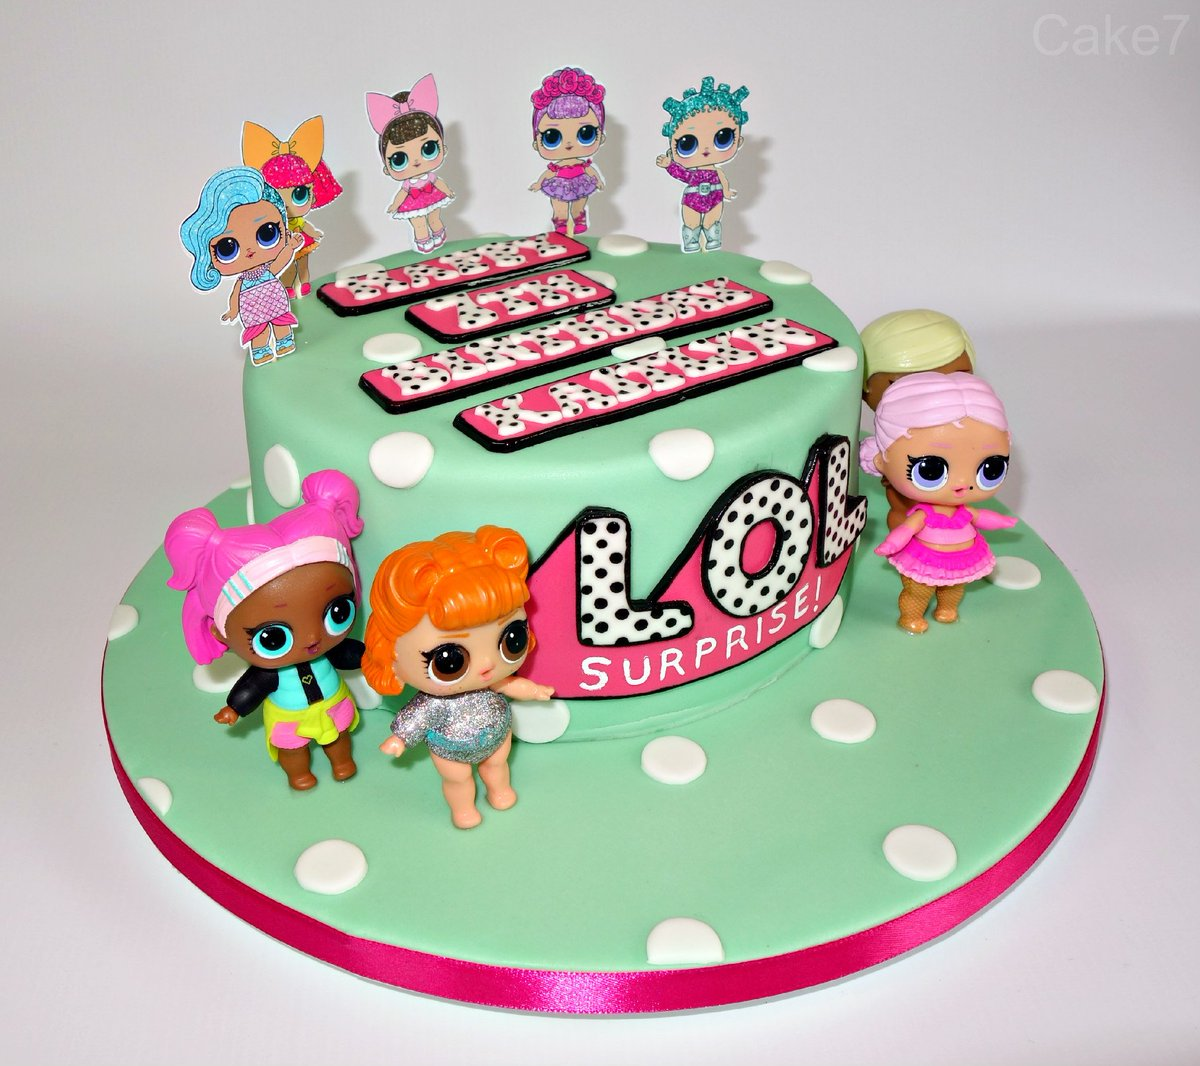 Cake7 On Twitter Here S My Lol Surprise Dolls Themed Double